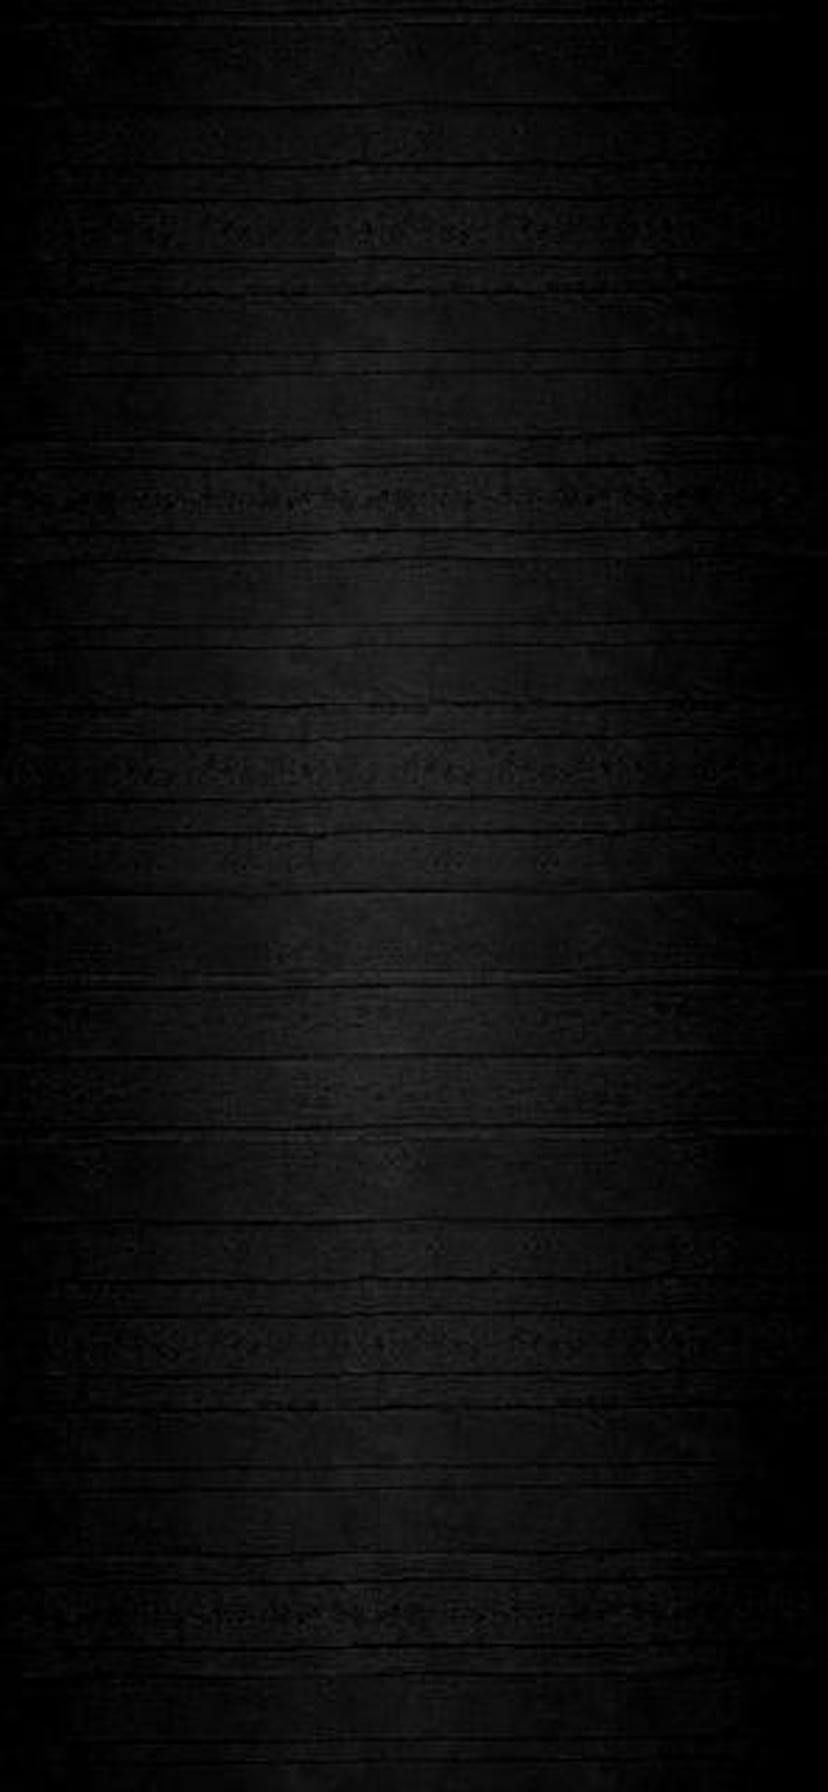 1 Dark Wallpaper HD for iPhone XS Max, iPhone XS, iPhone